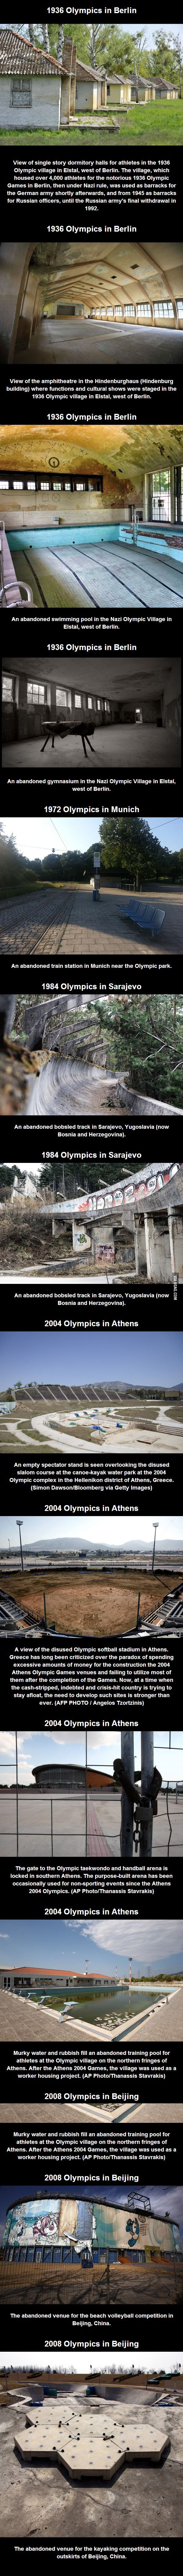 Abandoned Olympic Venues - the money could have been better spent.  This is part of the reason I'm not as into the Olympics anymore.